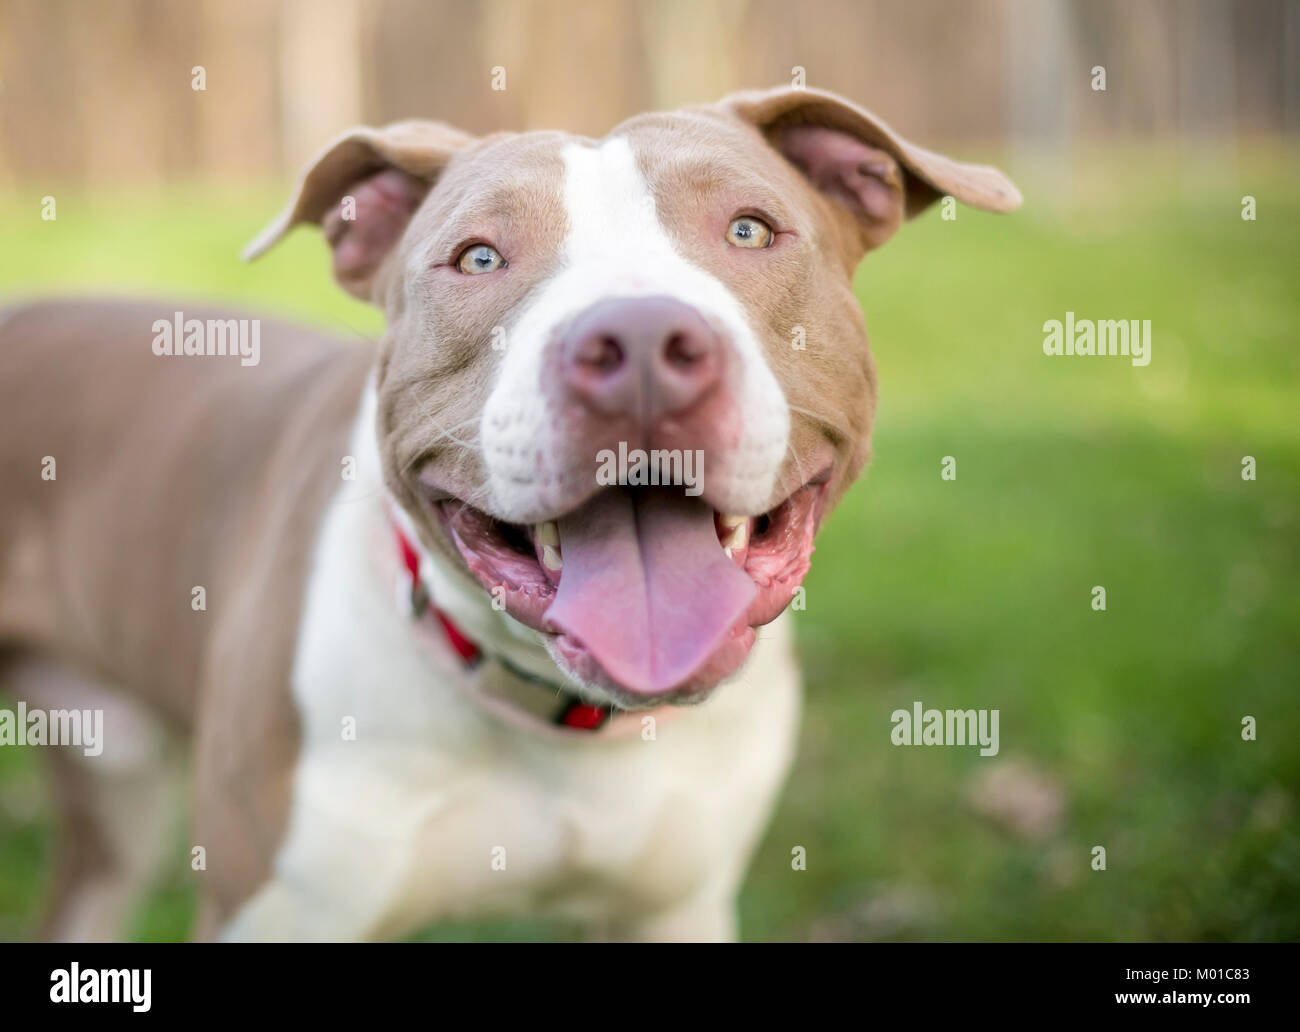 Portrait Of A Smiling Pit Bull Terrier Mixed Breed Outdoors Stock Photo Alamy